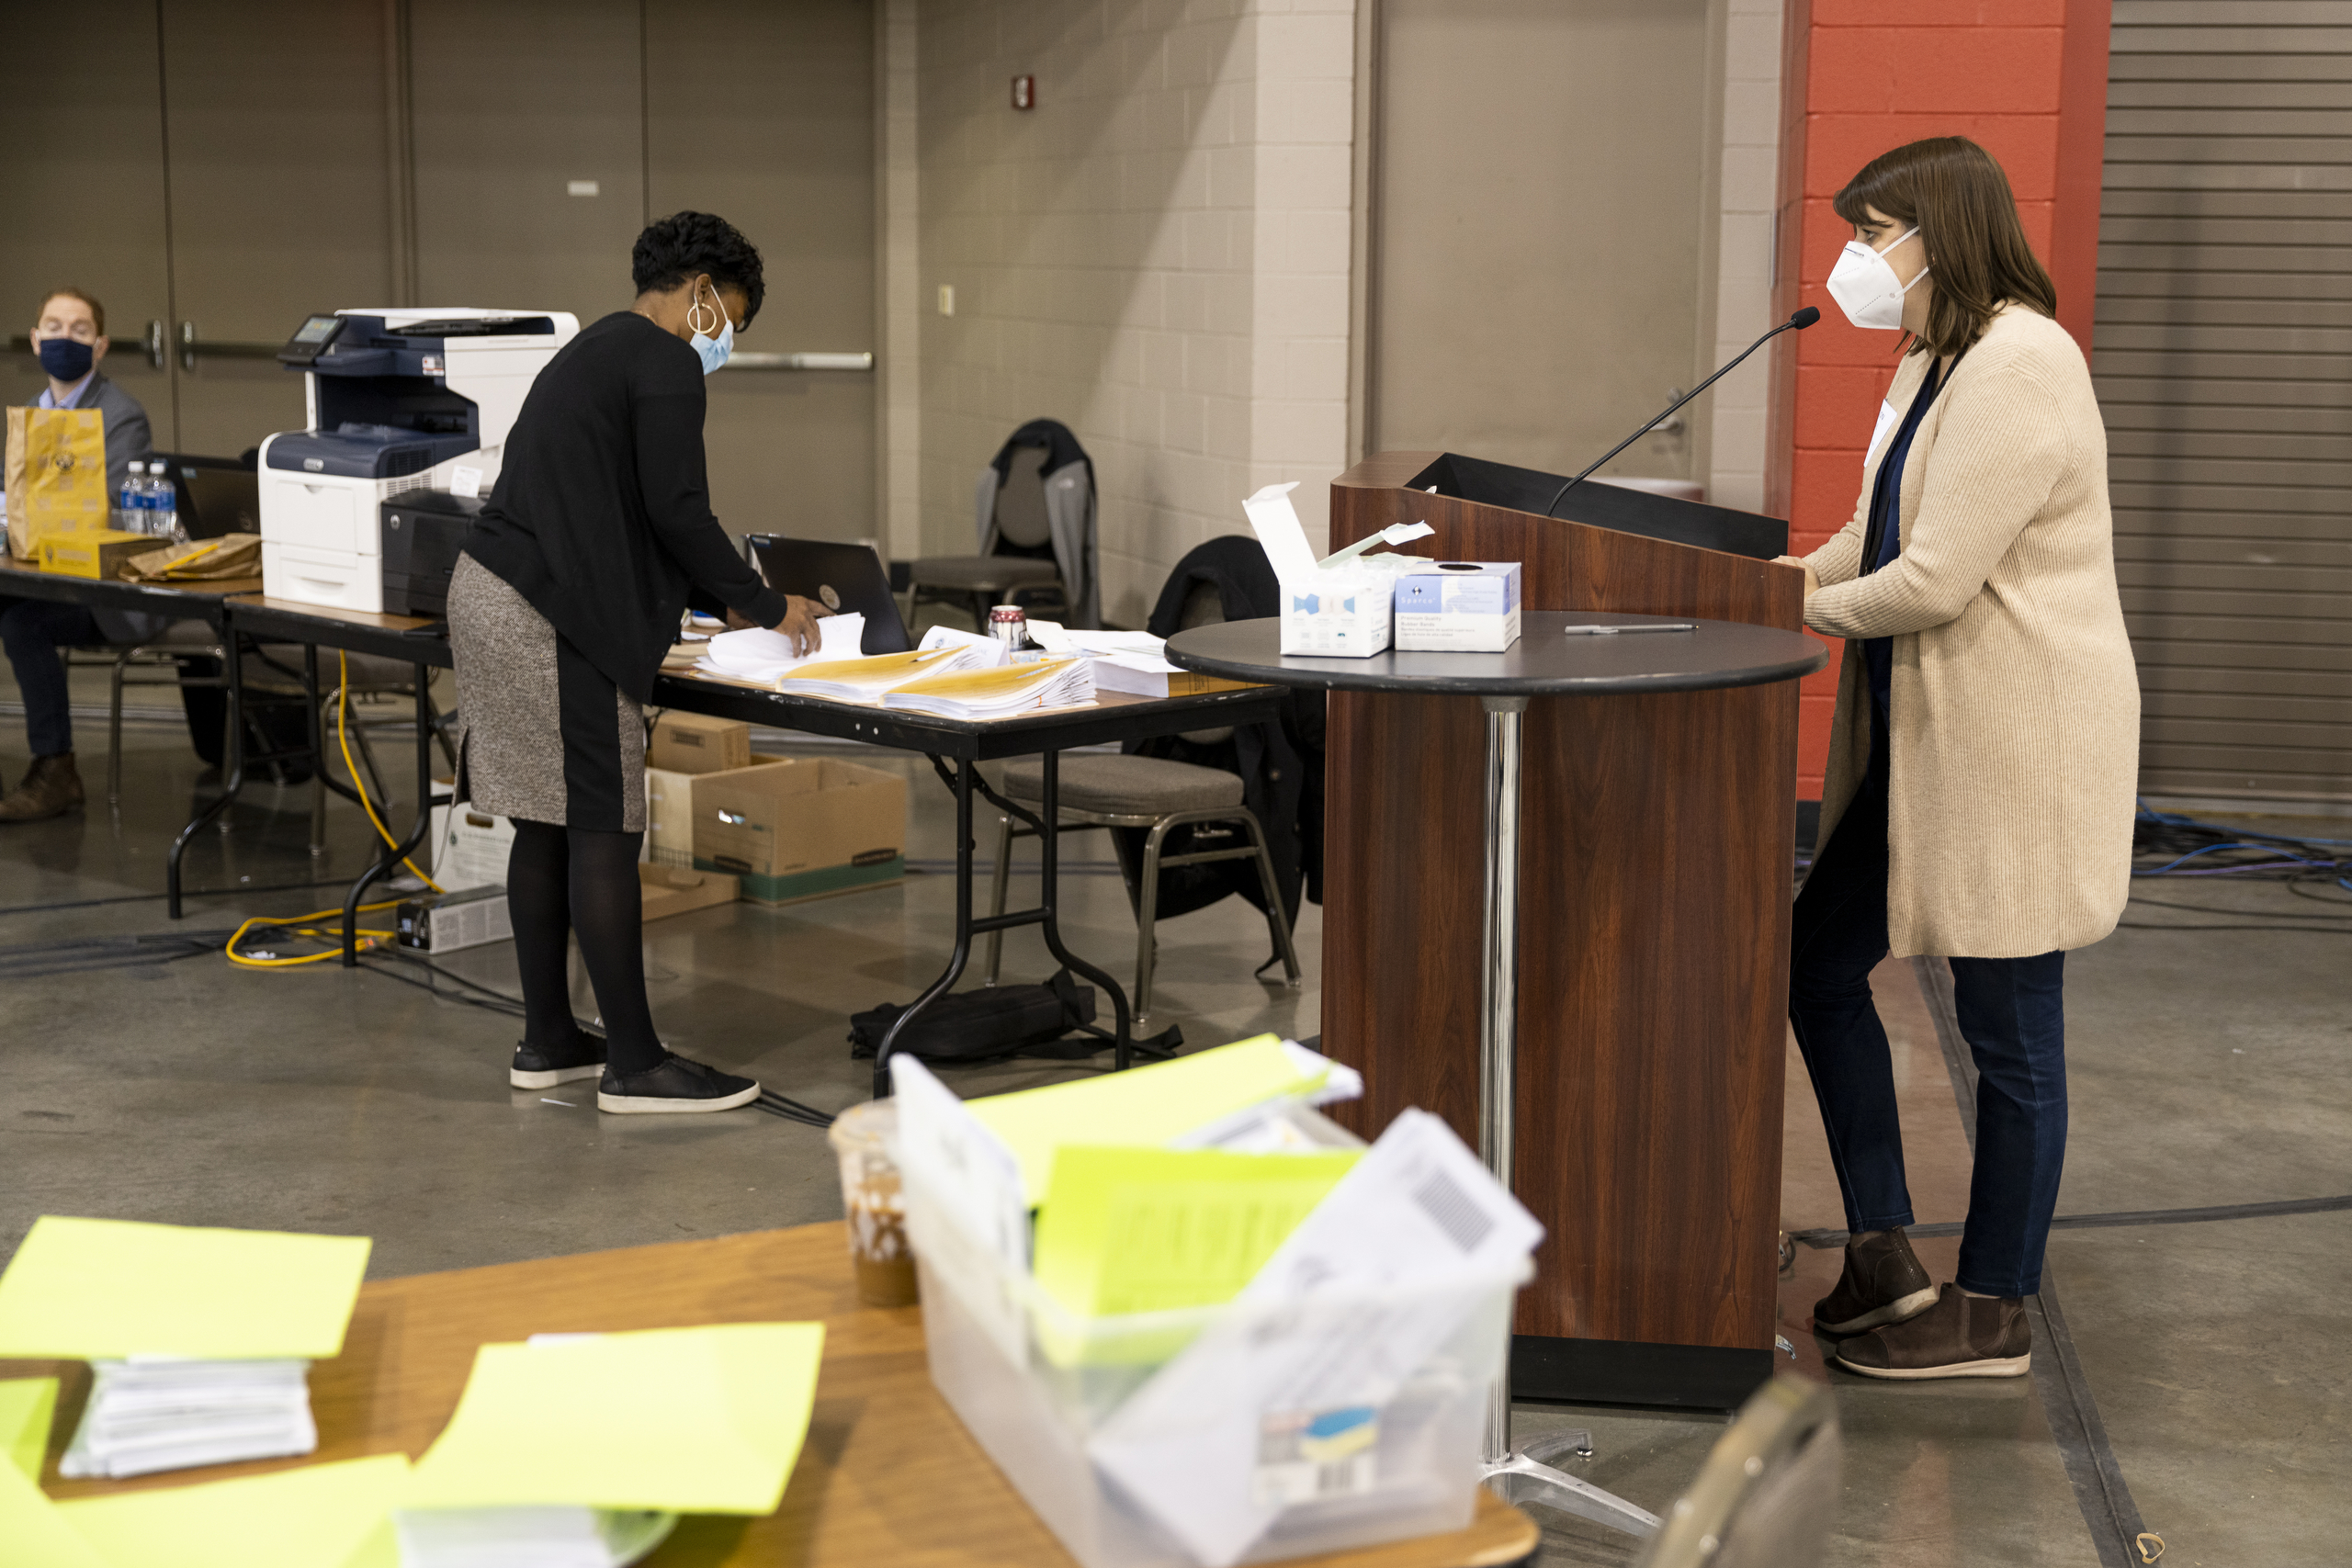 Claire Woodall Vogg, Executive Director Of Milwaukee's Election Commission, Speaks With Republican Commissioner Rick Baas (middle) And Milwaukee County Clerk George Christenson (right) During The Presidental Recount Held At The Wisconsin Center Convention Center In Milwaukee, Wi On Wednesday November 25th, 2020.